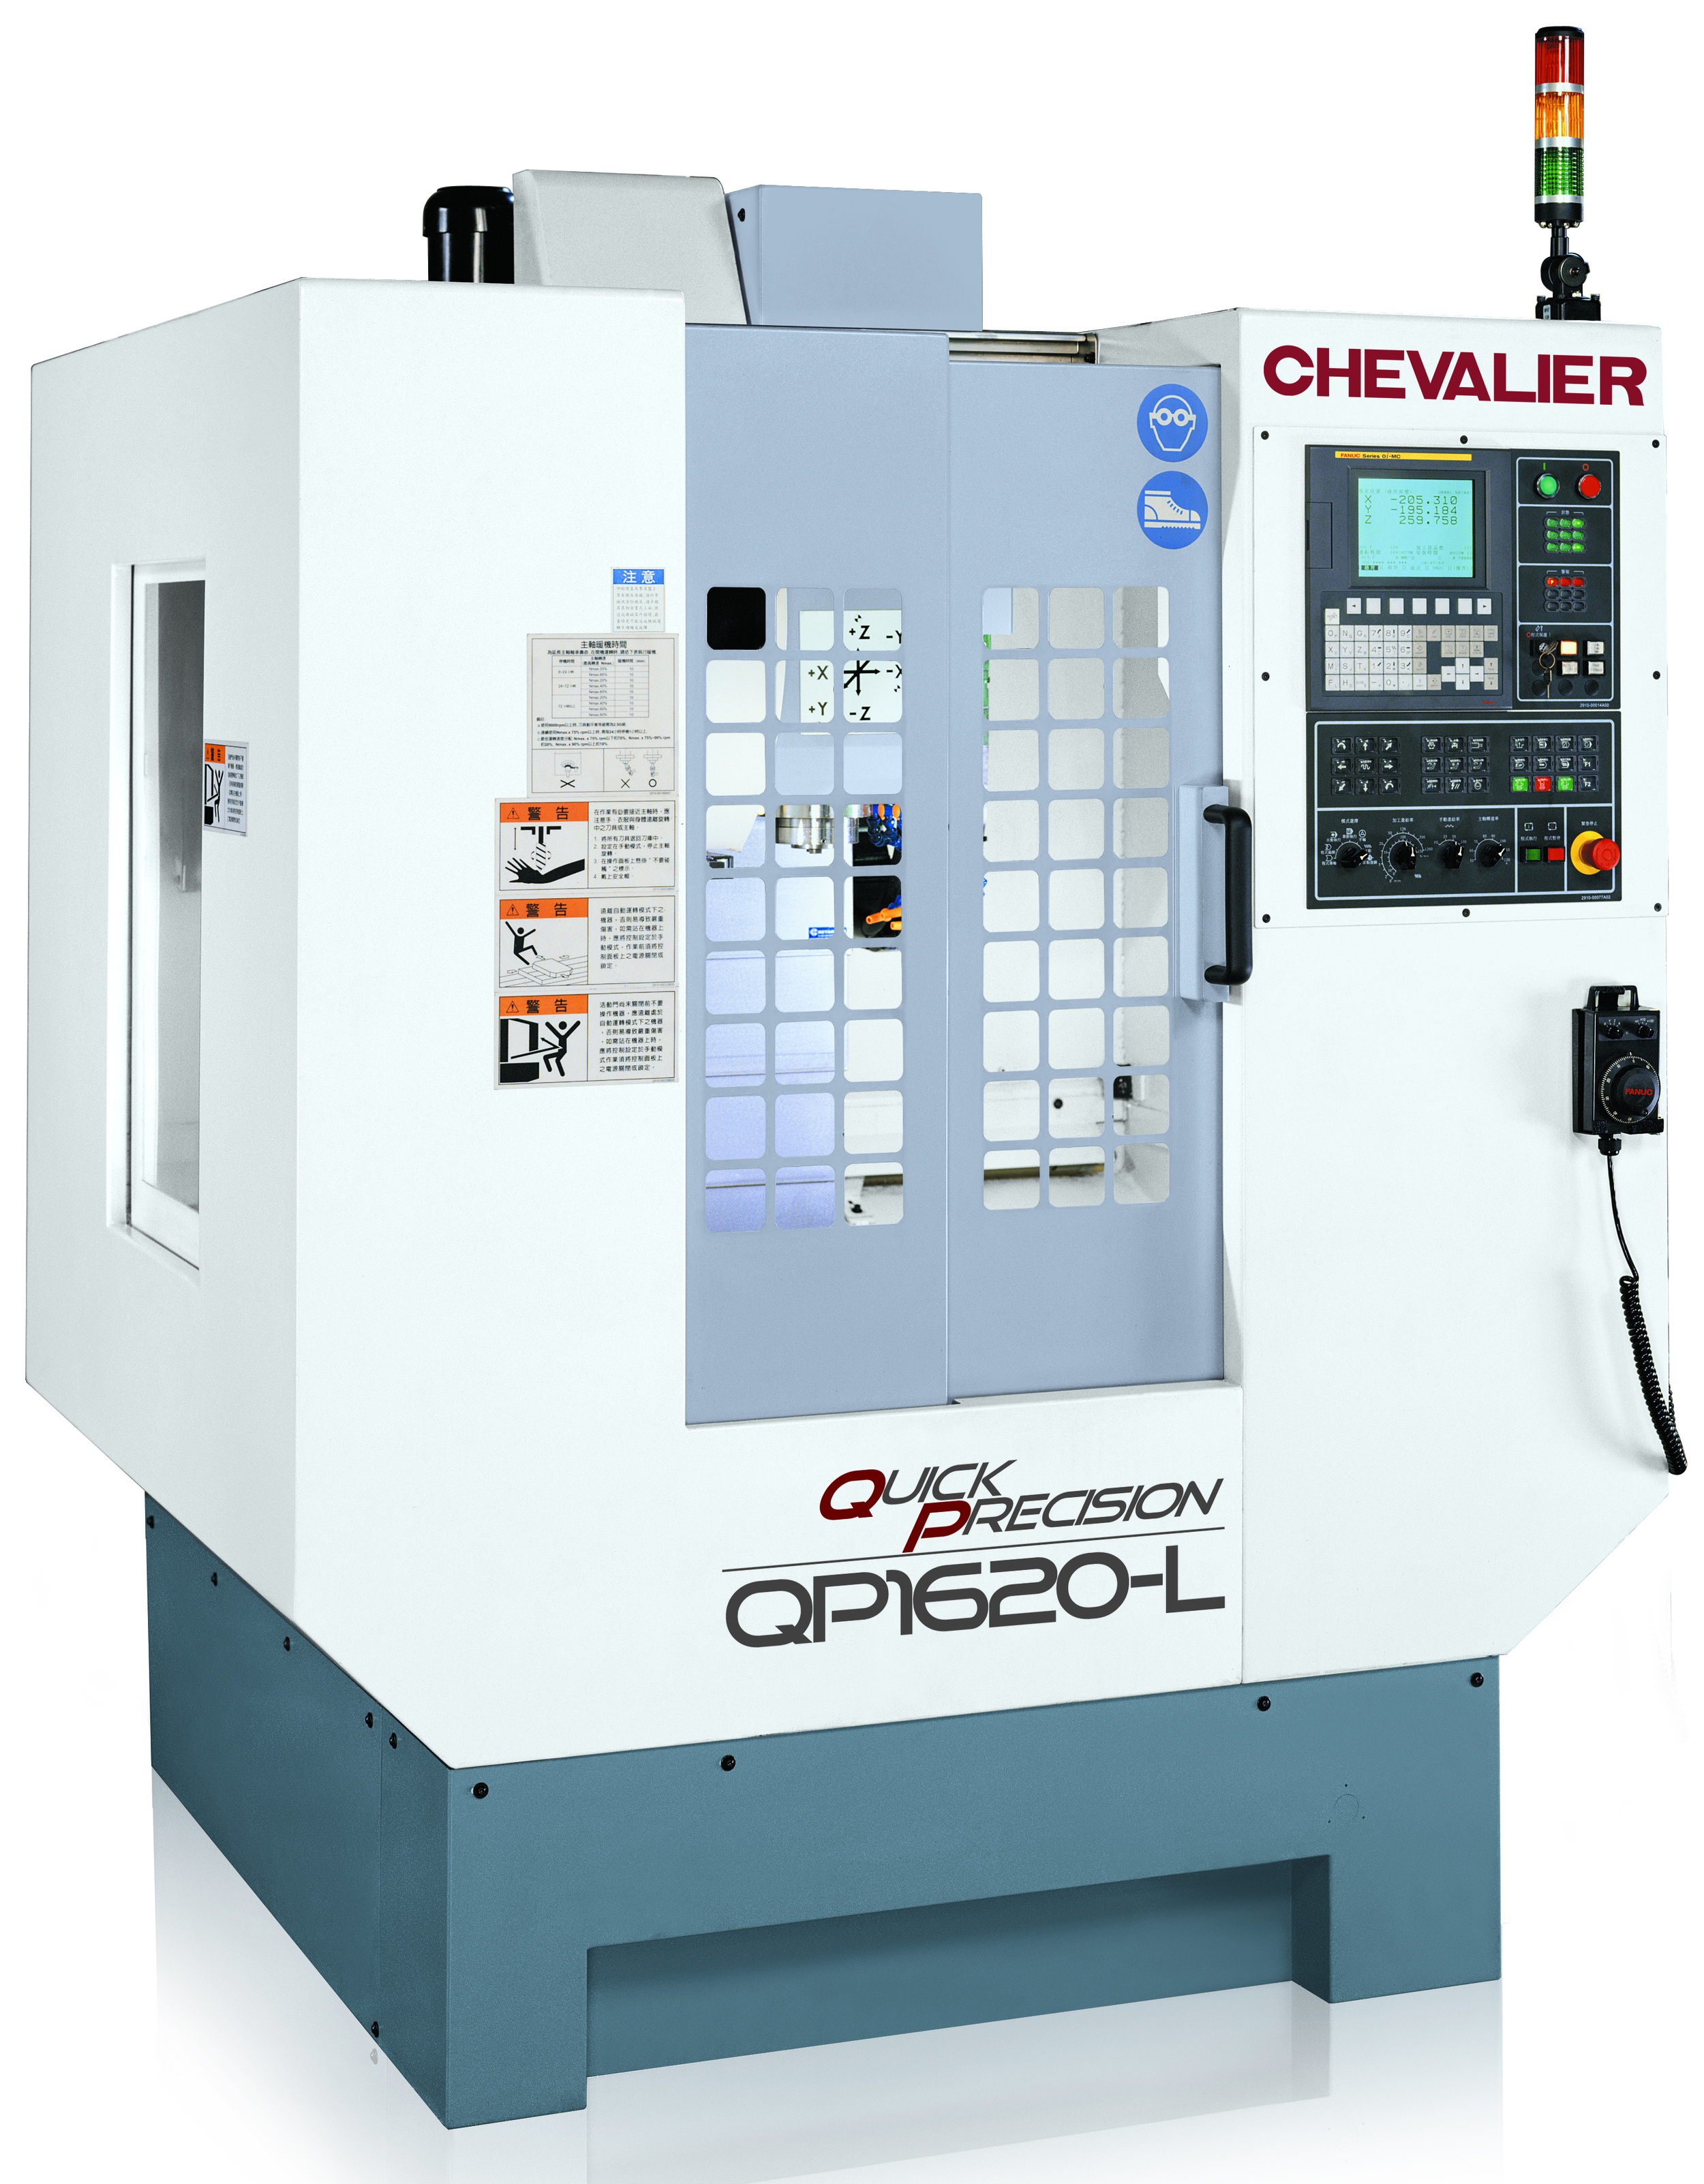 Chevalier QP1620-L: 2.5 Axis cnc machining center